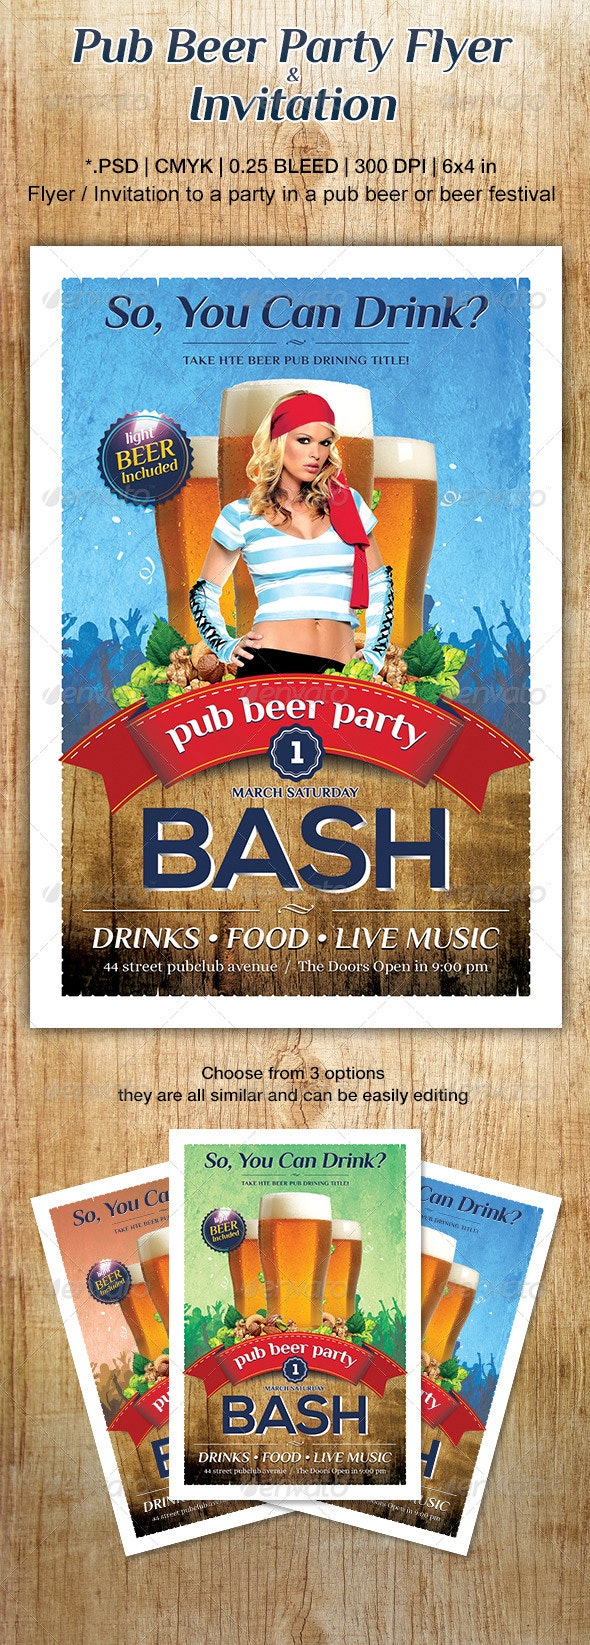 Pub Beer Party Flyer or Invitation - Events Flyers